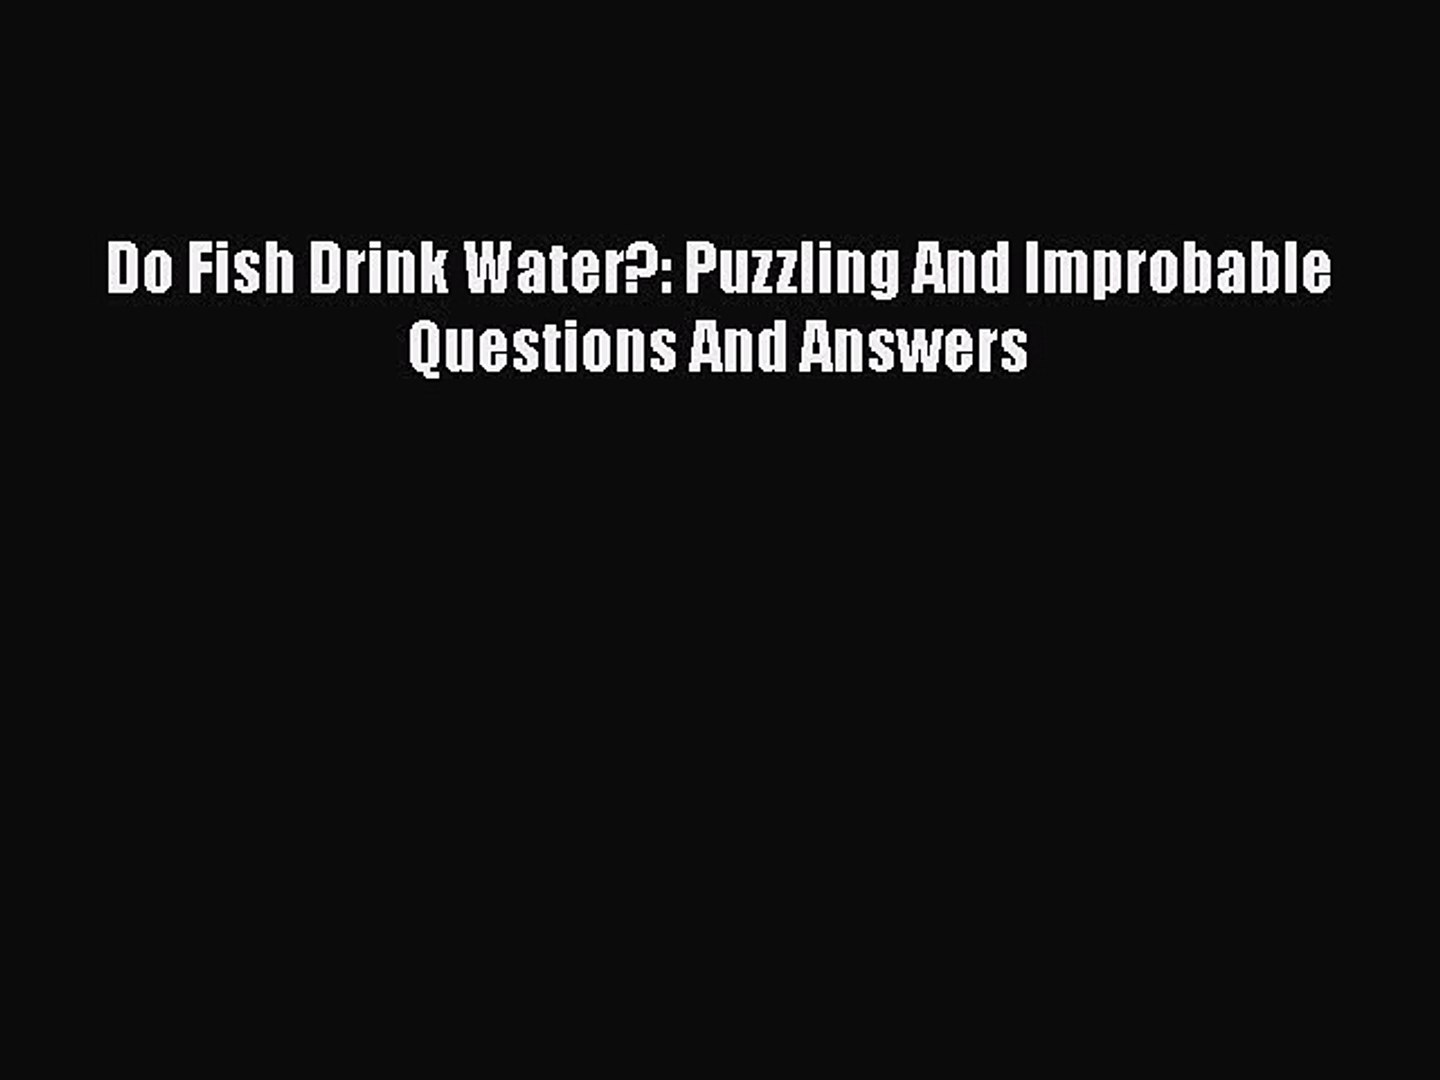 Download Do Fish Drink Water?: Puzzling And Improbable Questions And Answers Ebook Online